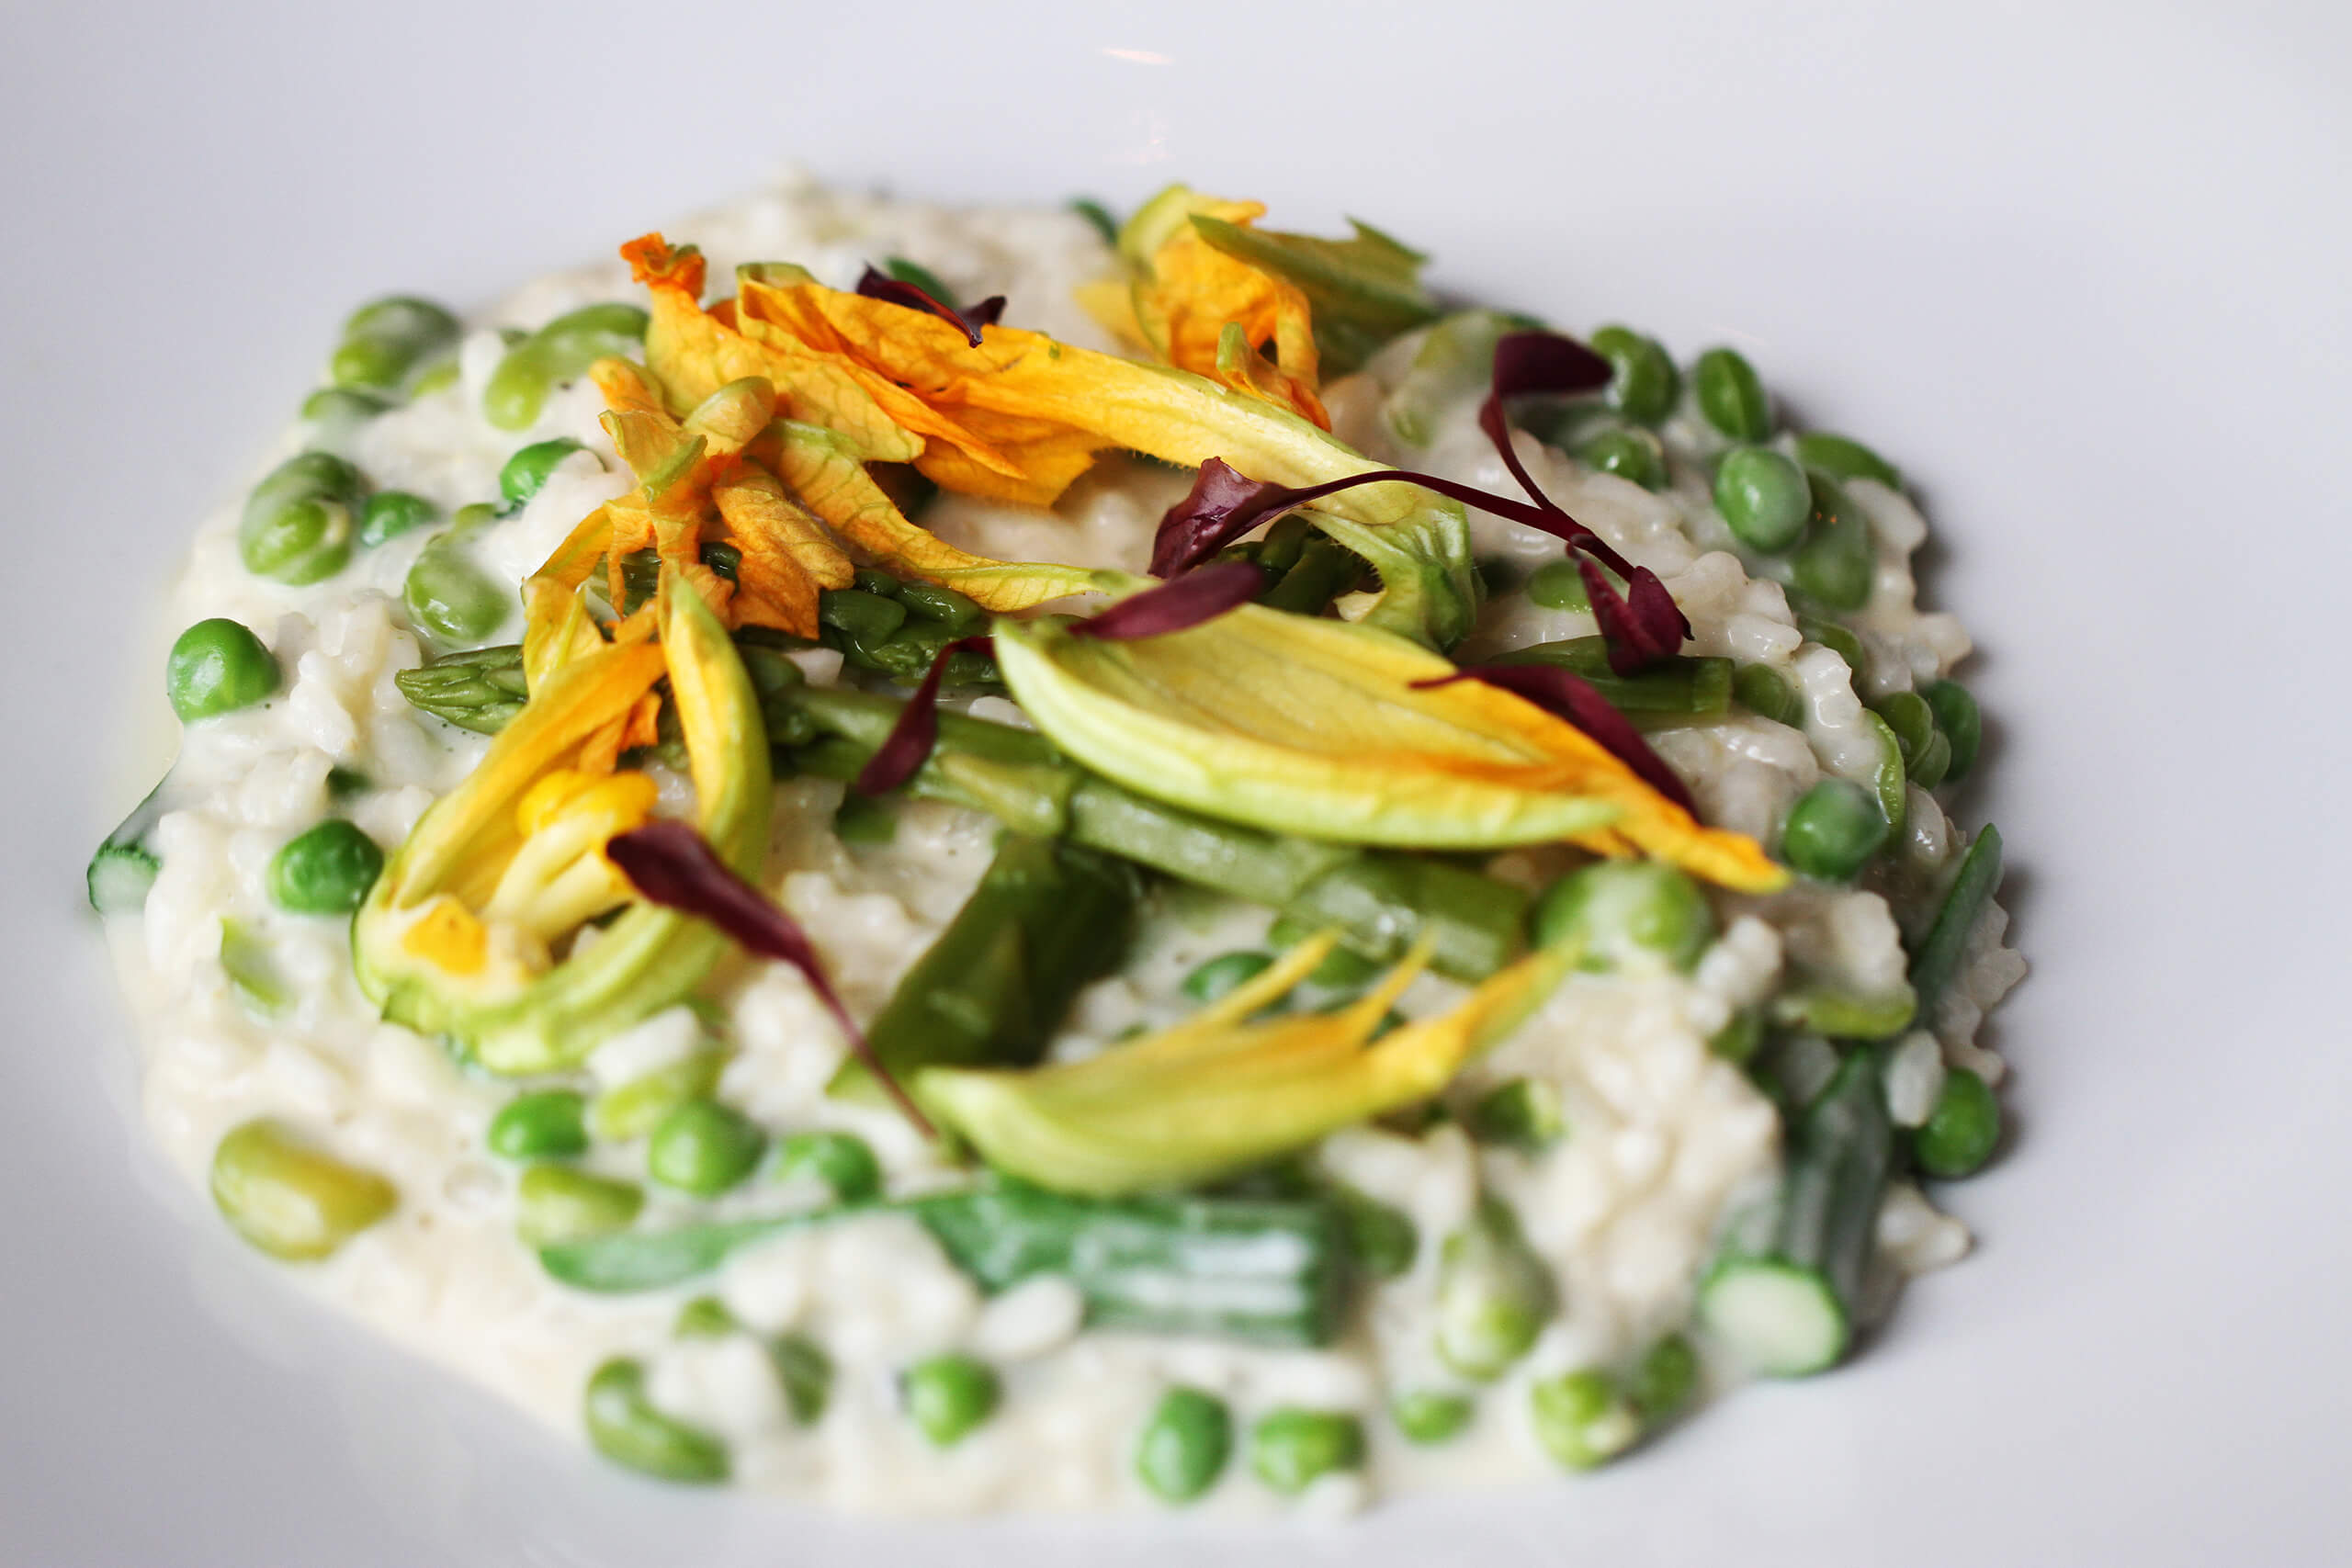 Courgette flower & summer vegetable risotto, eat flowers, flower, floral, chelsea flower show, chelsea, beautiful, summer, health, healthy, plate, seasonal, fresh, yummy, beautiful, stunning, creative, chef, cook